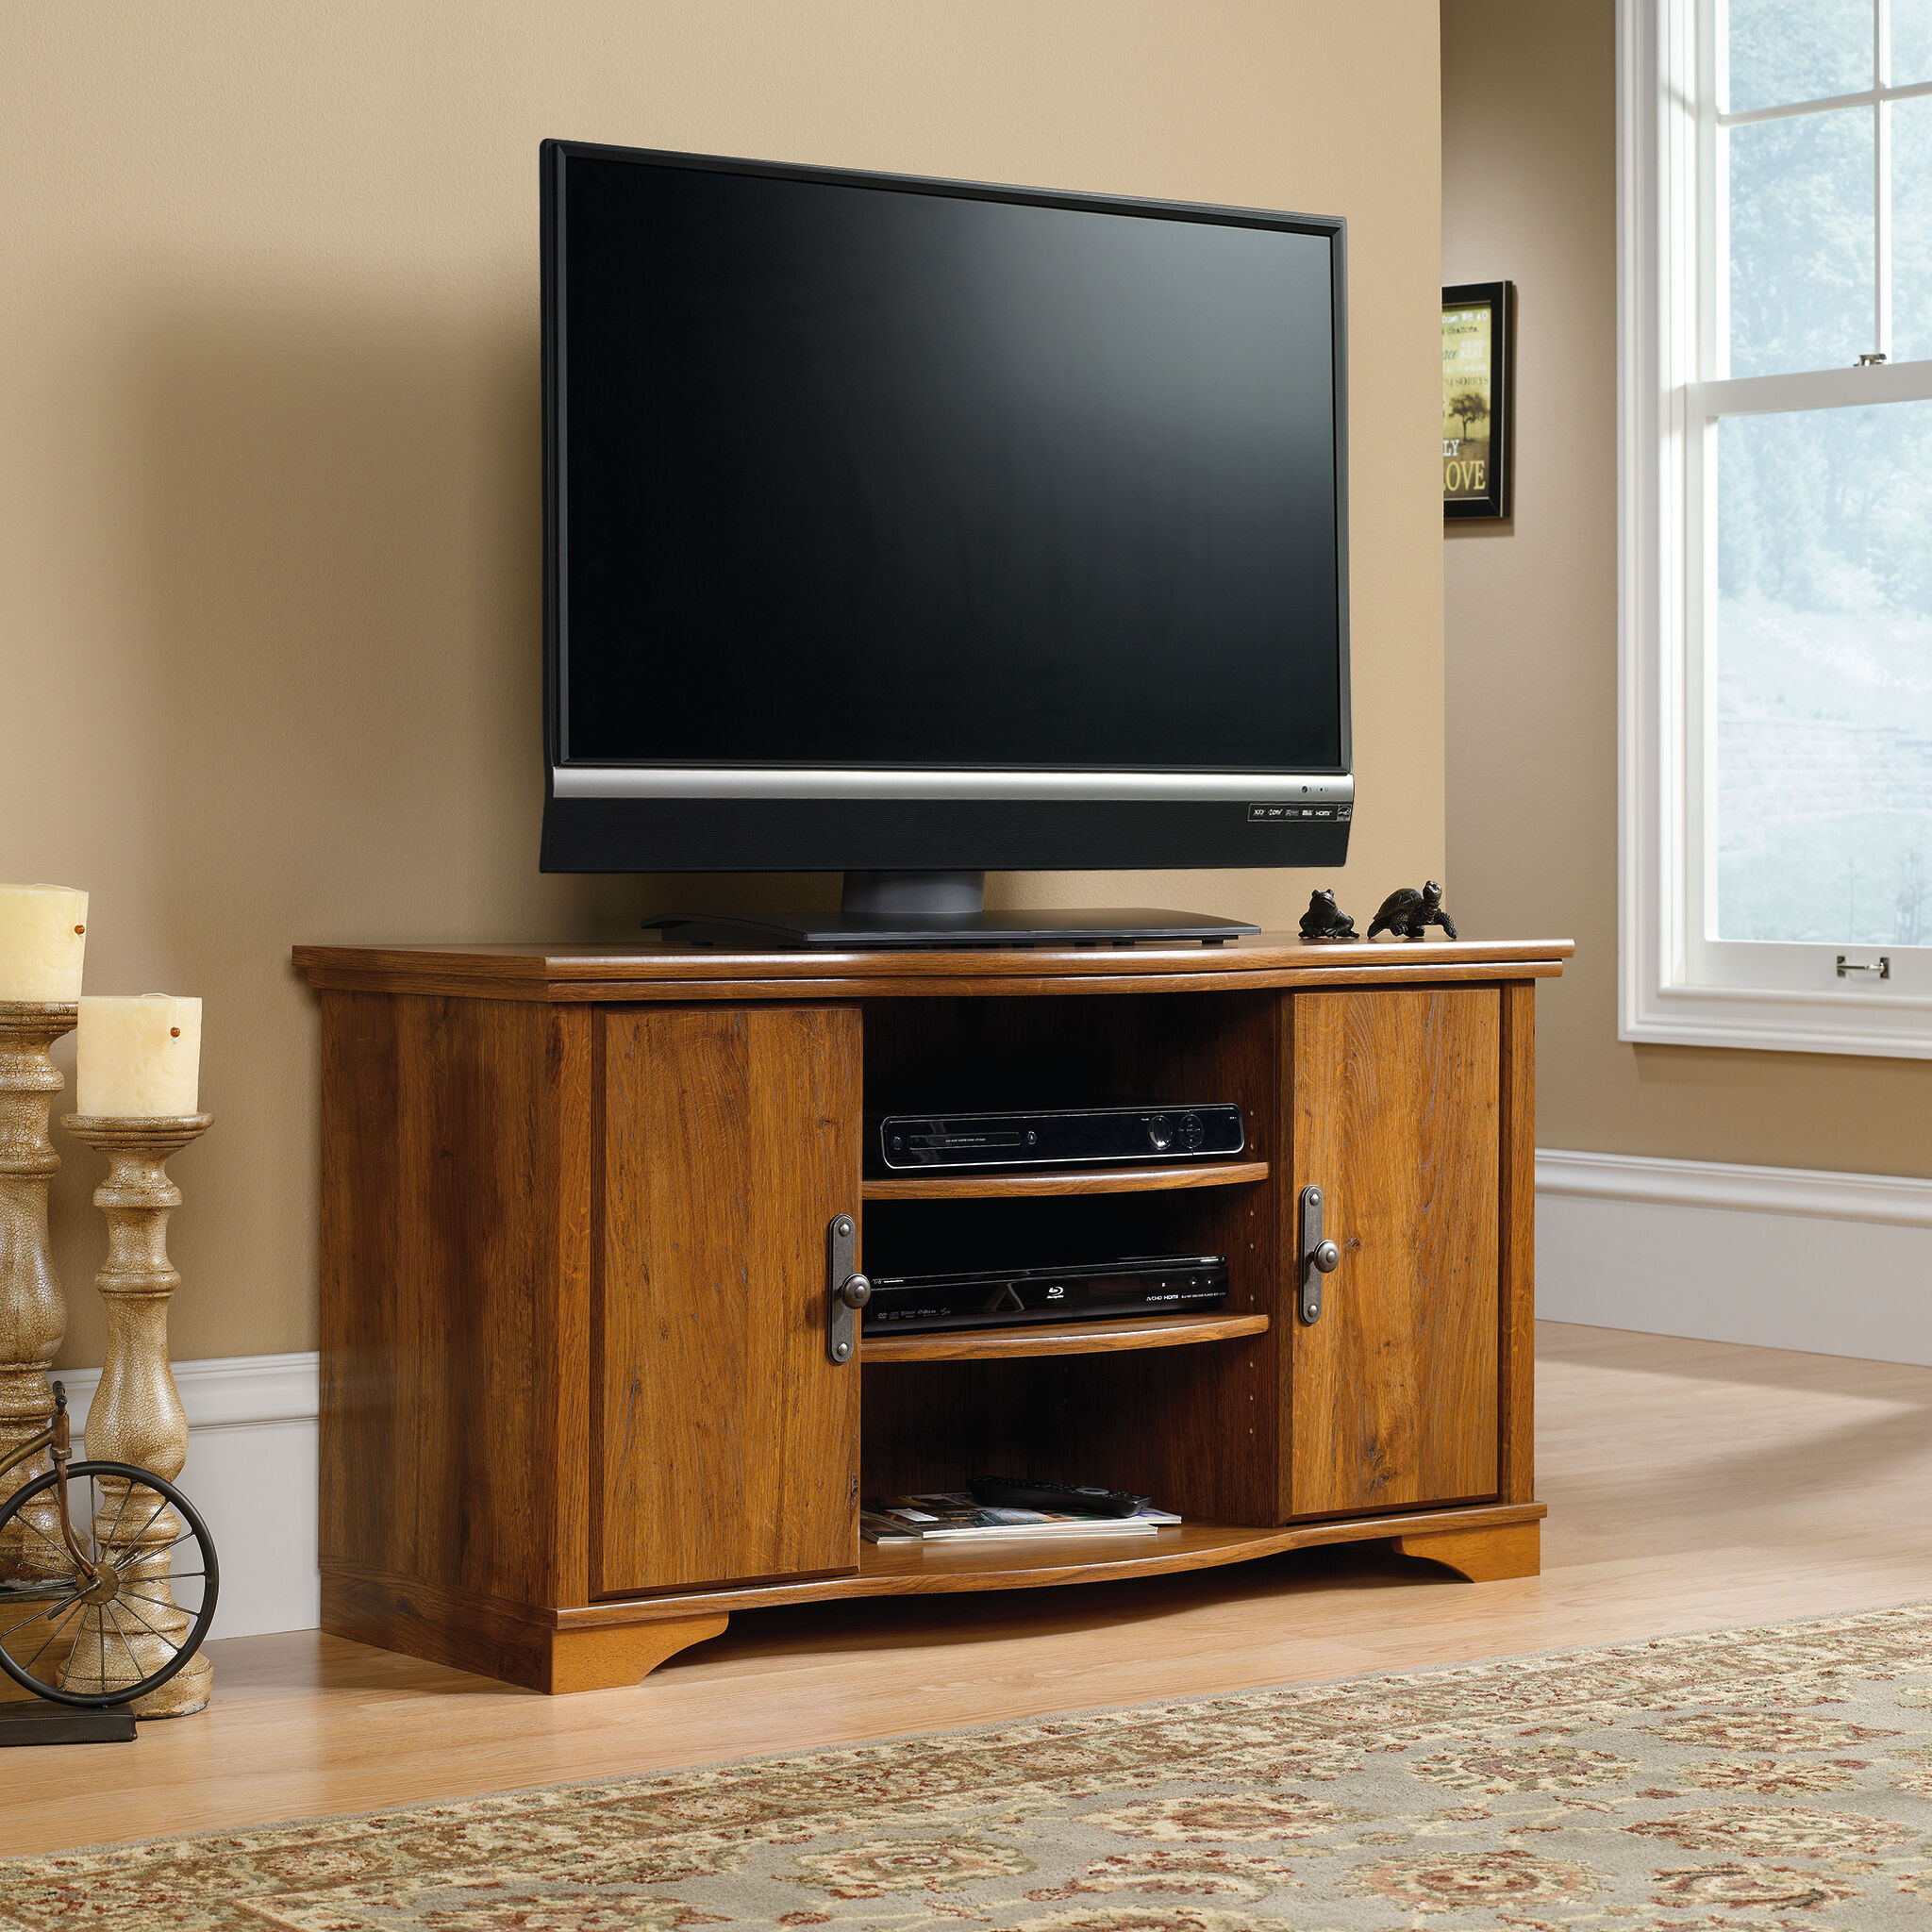 Images Two Adjustable Shelf Transitional Entertainment Credenza In Abbey Oak